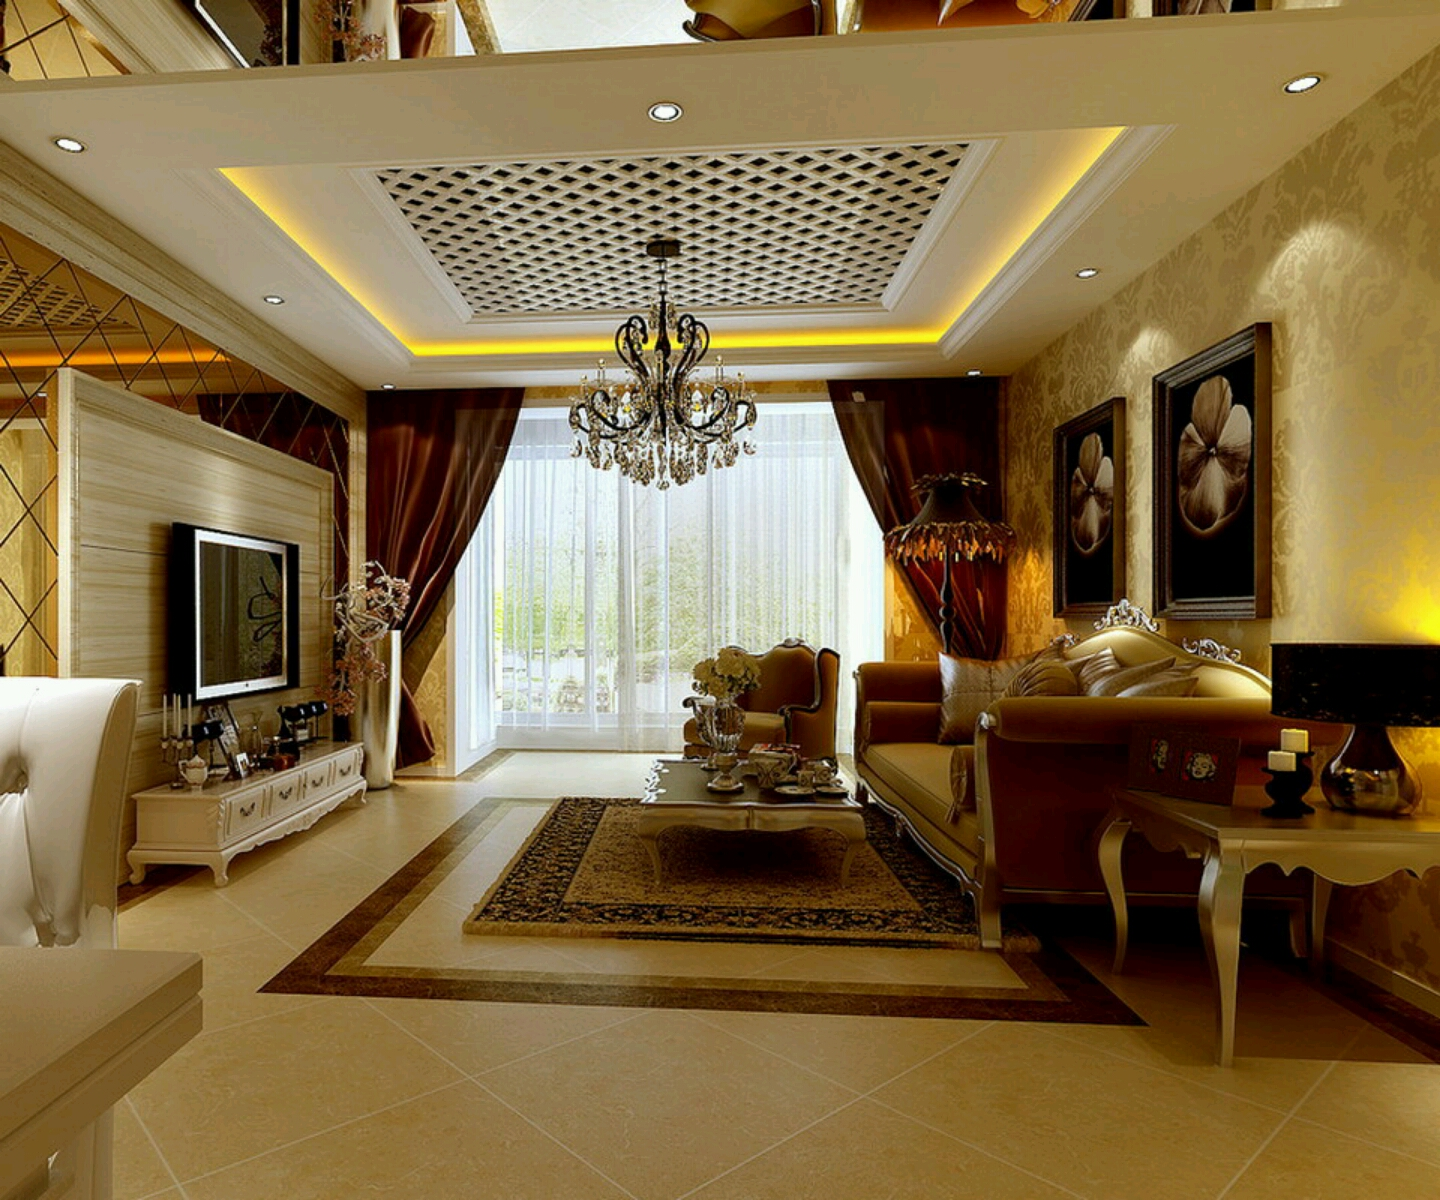 New home designs latest luxury homes interior decoration - Home interior decoration ideas ...